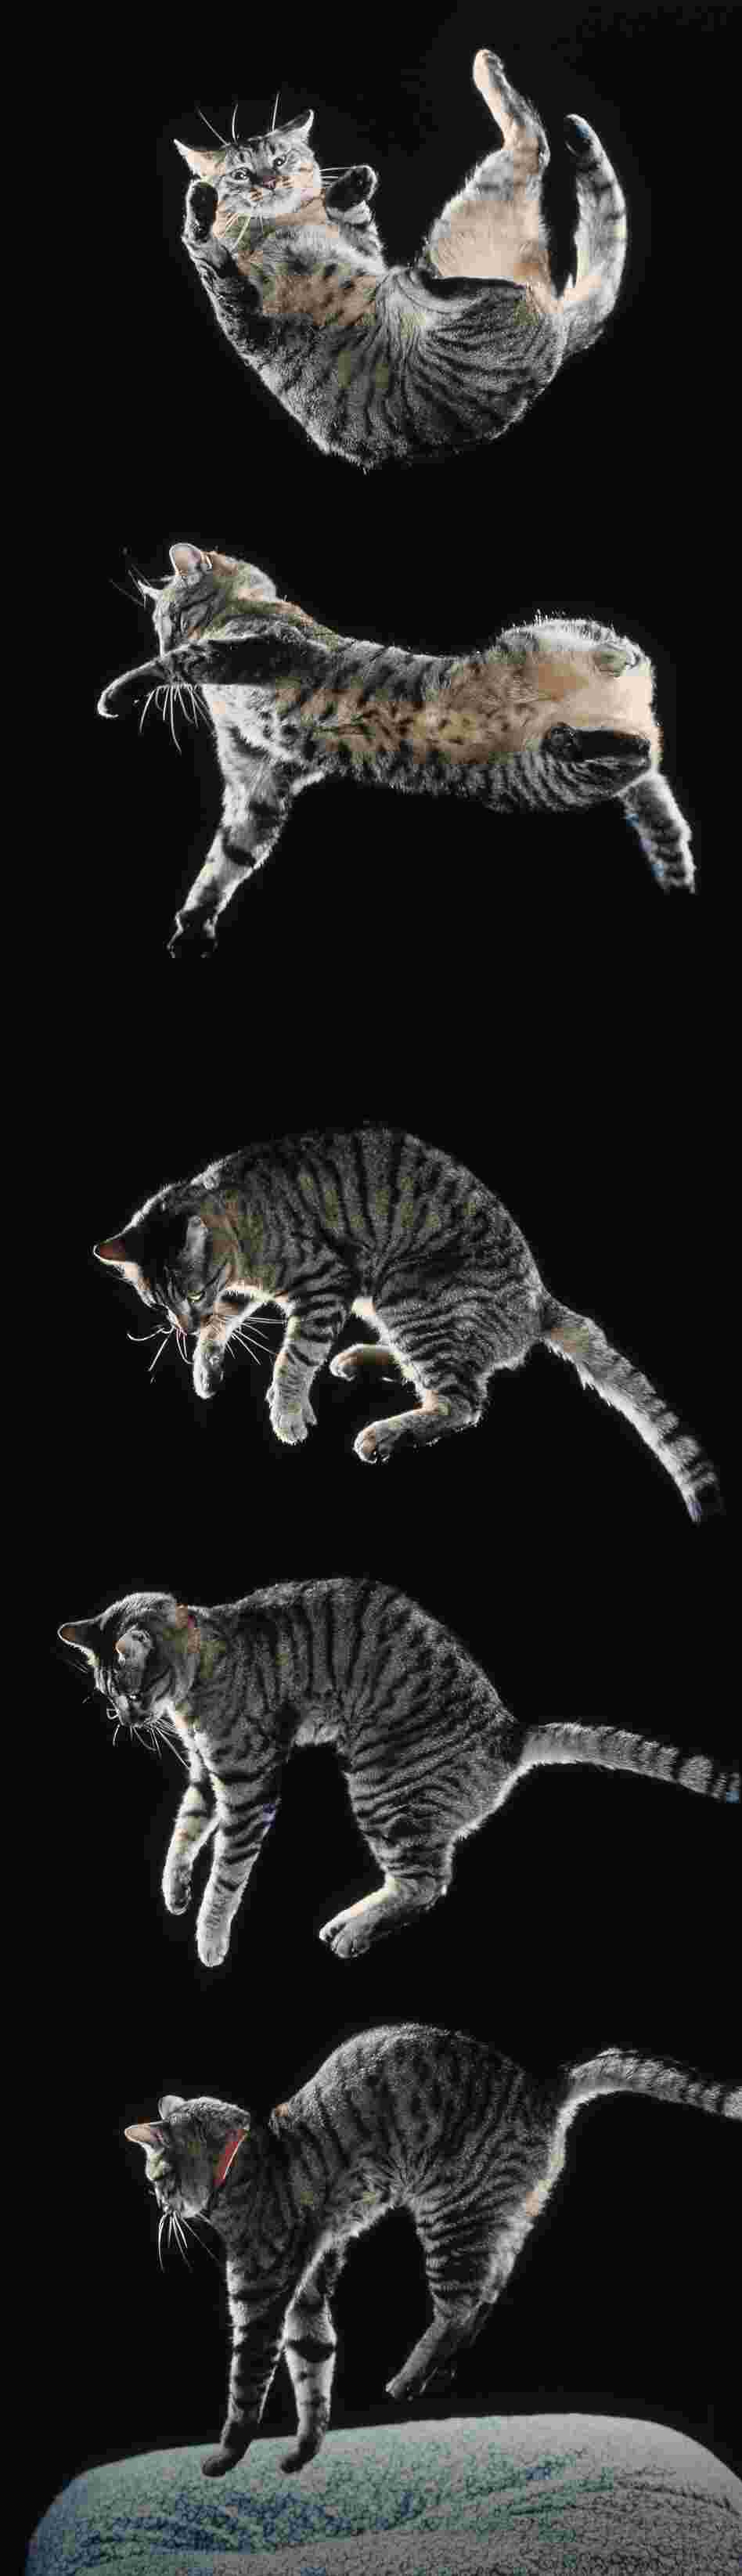 Cat falling sequence. Six sequential images showing righting from upside down.